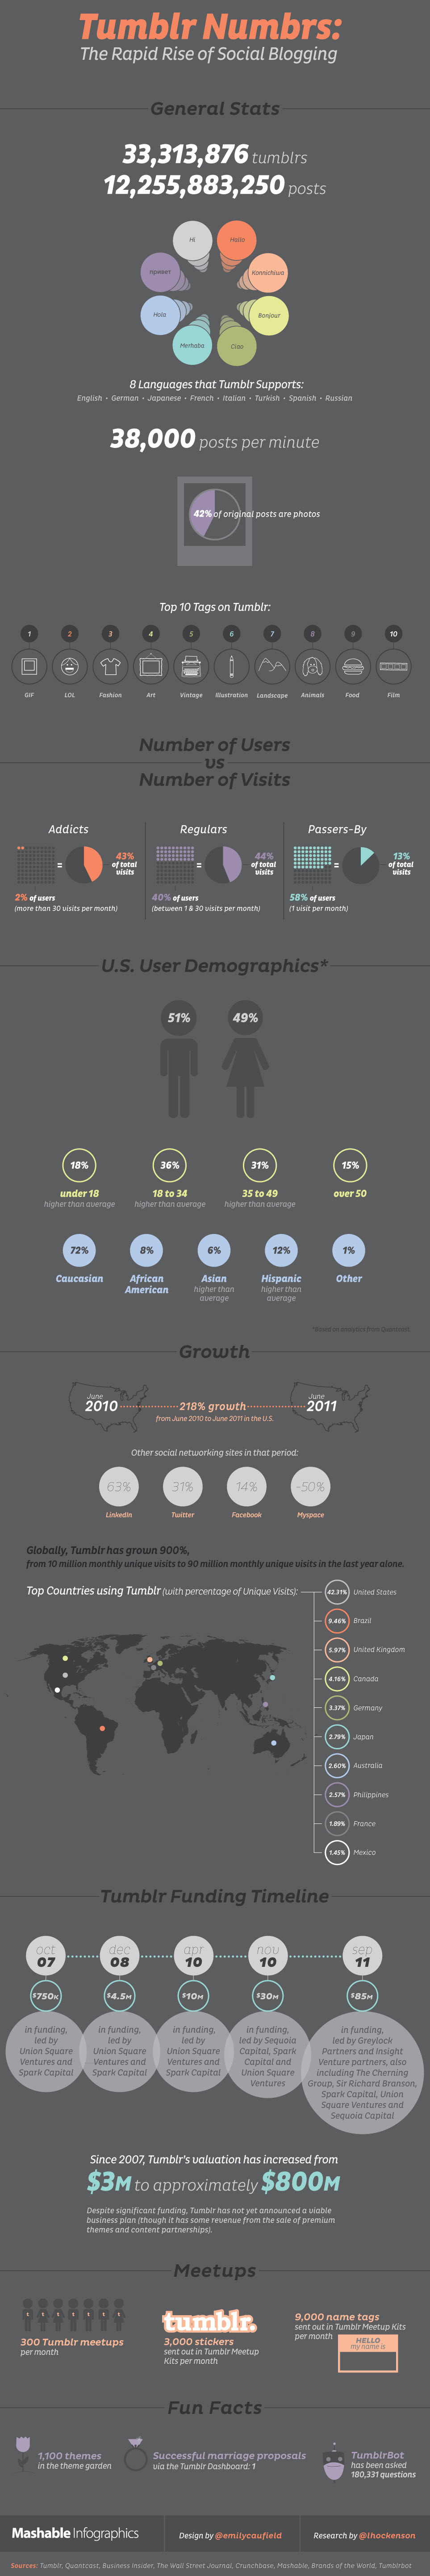 Tumblr the rapid rise of social blogging1 Social Media – What is Tumblr?